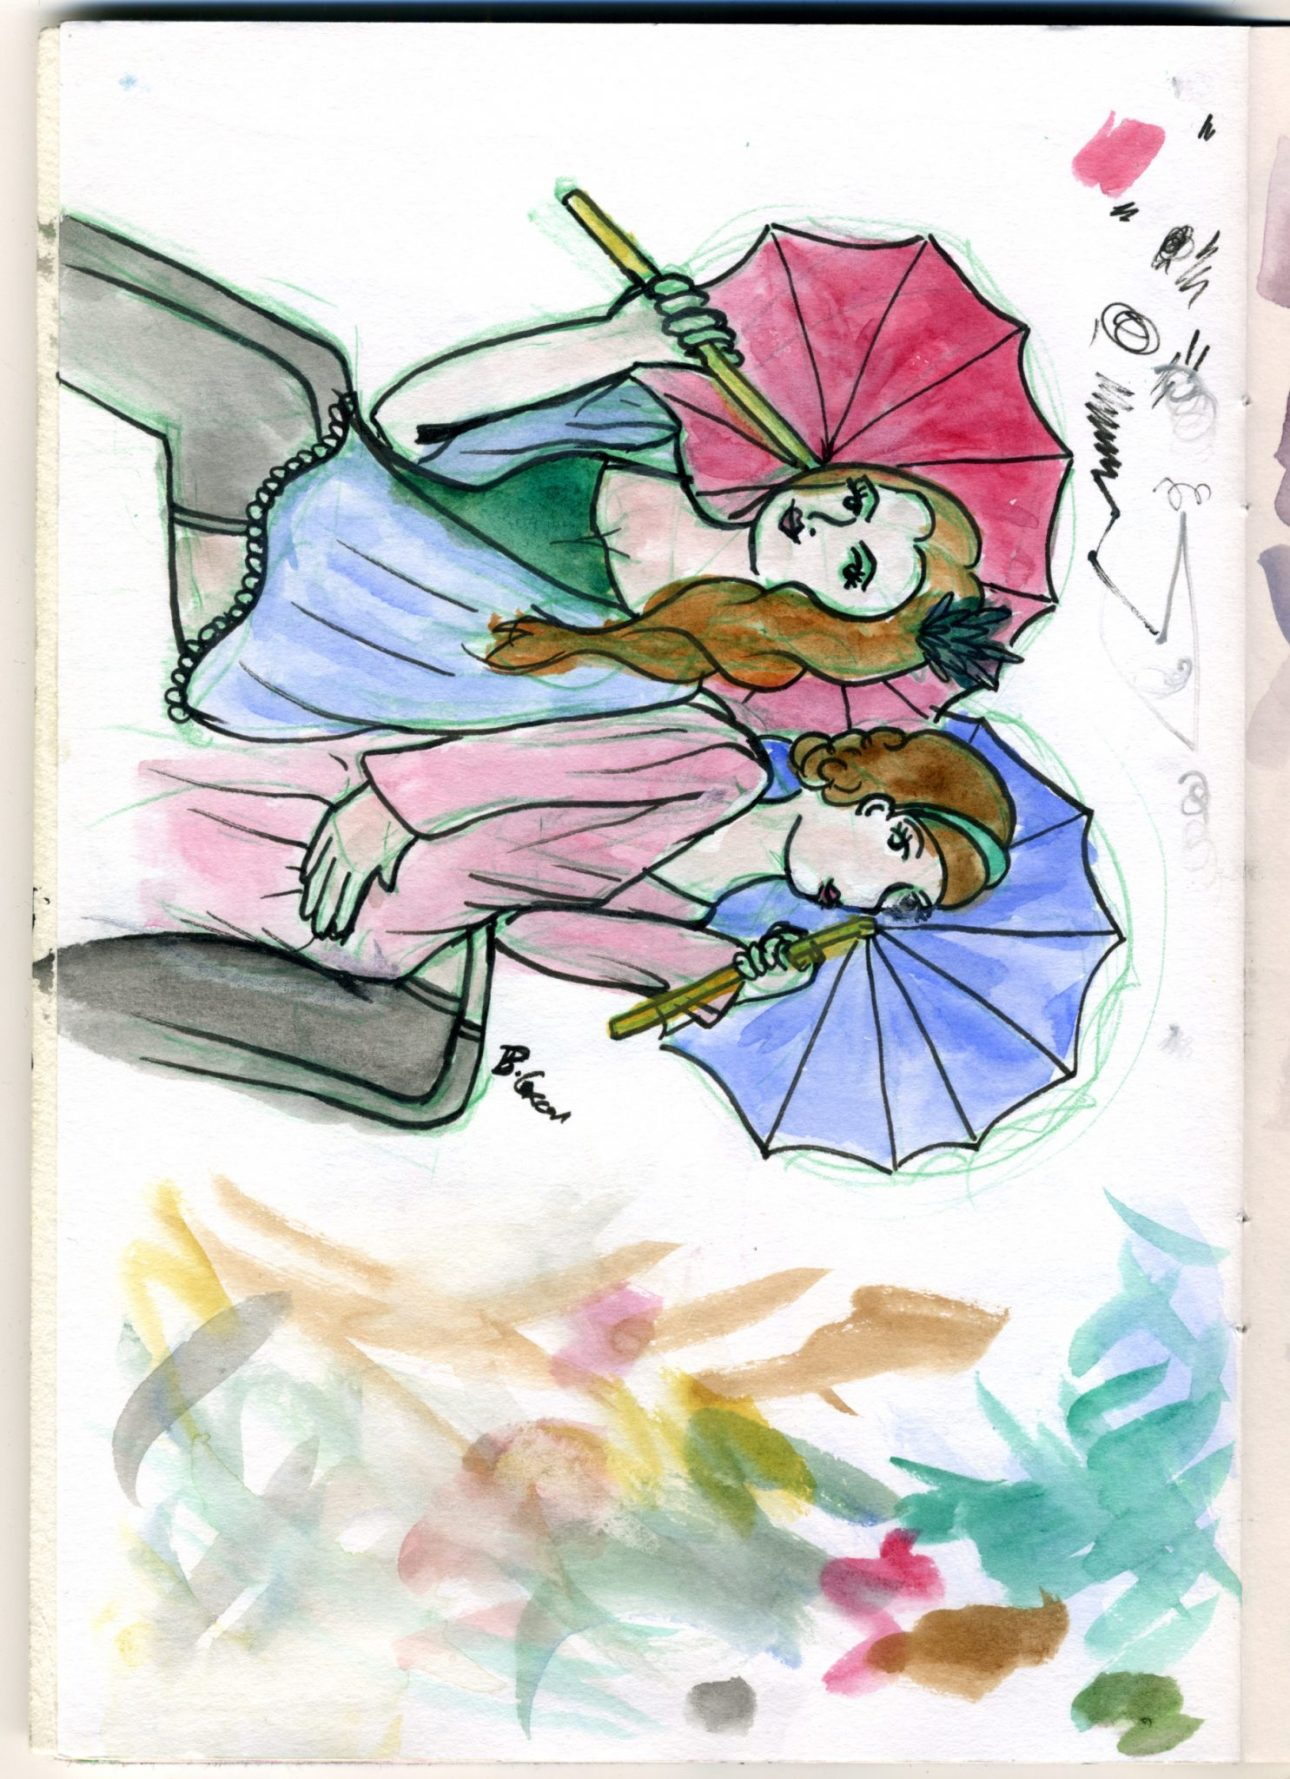 A watercolur sketch of two women with parasols and flowing fabric dresses.